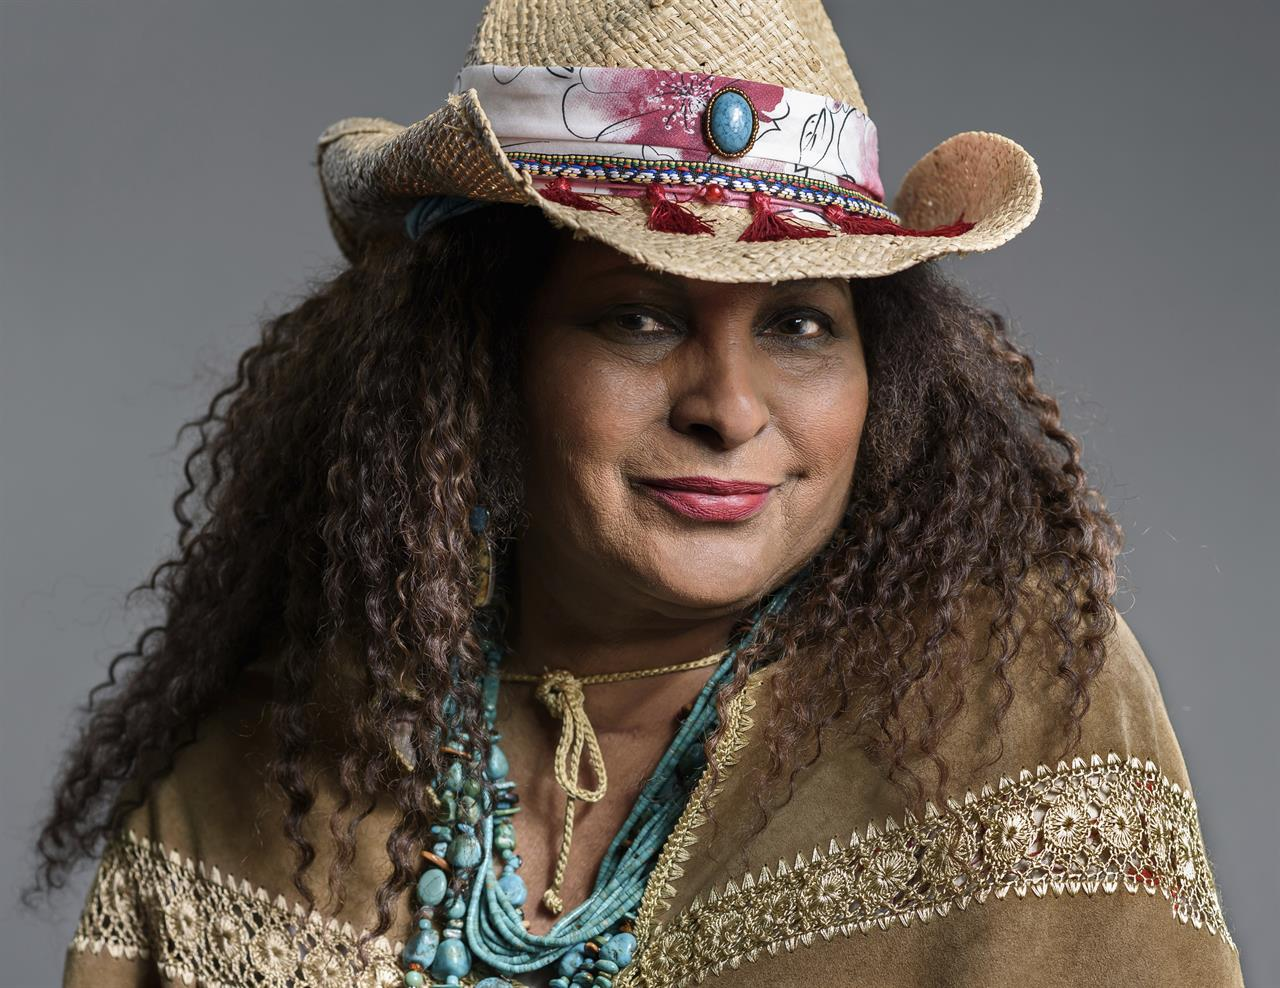 As Pam Grier celebrates 70, she finds peace off the grid | The ...